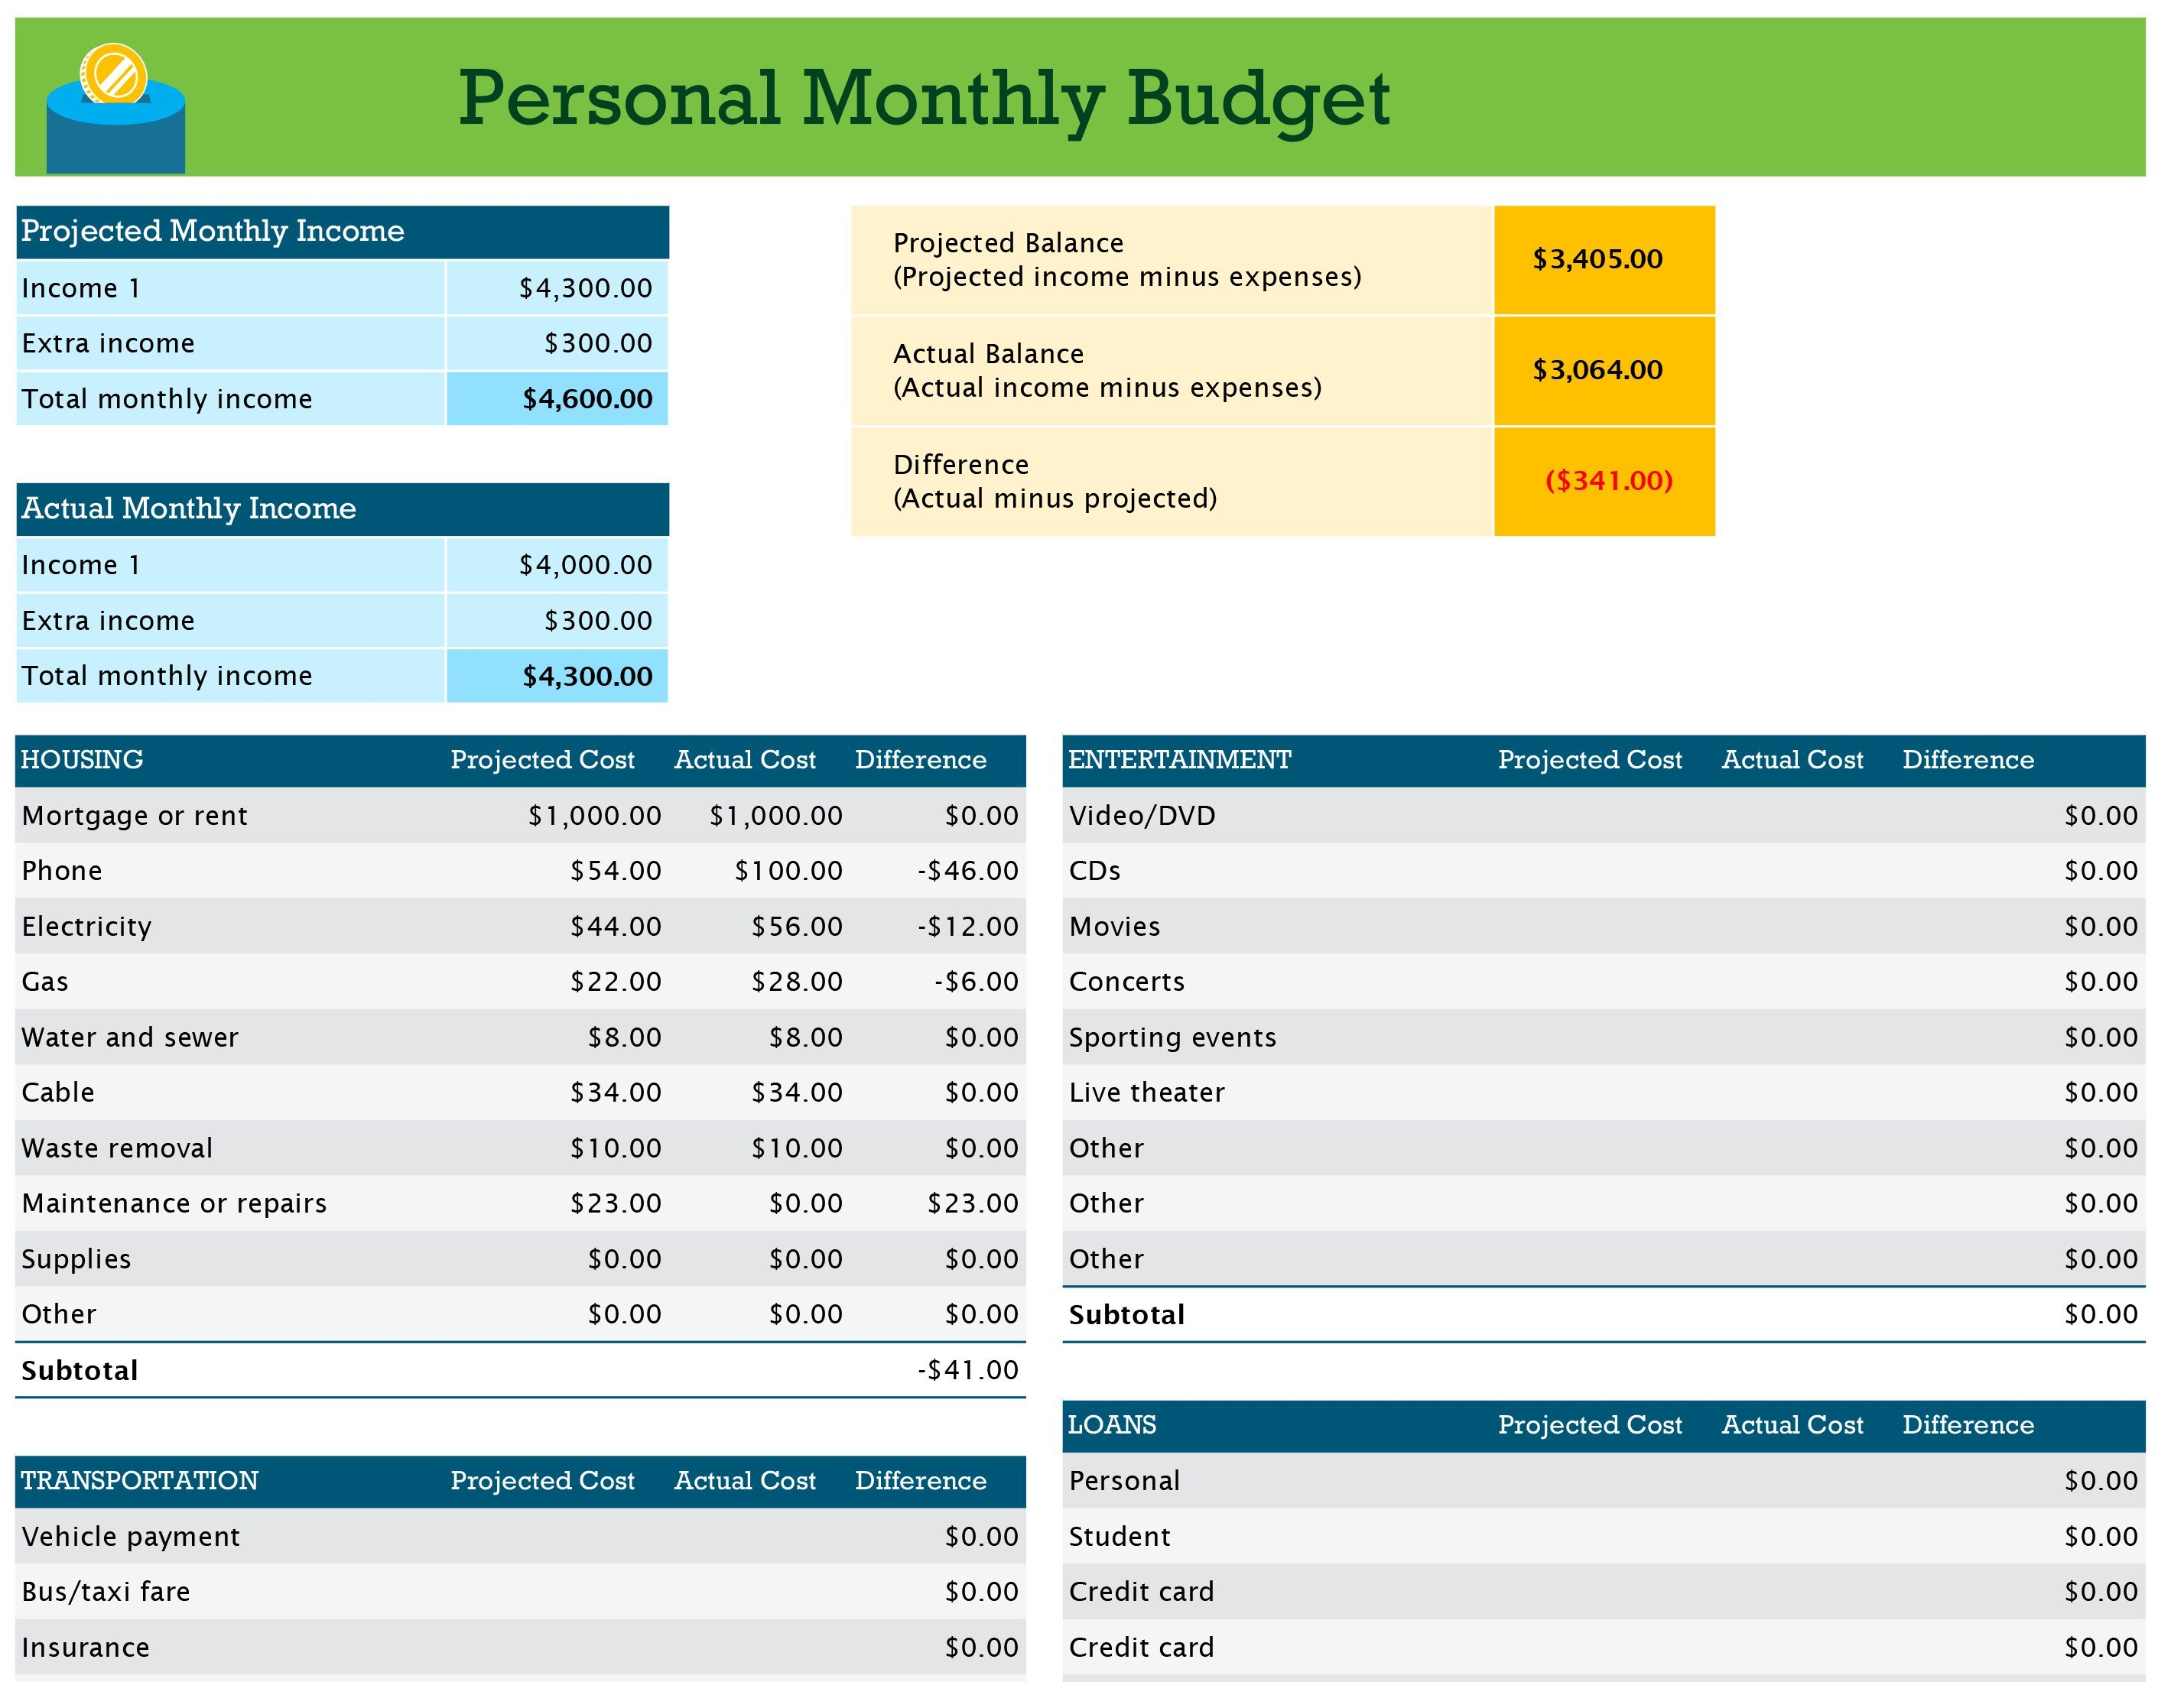 Personal Monthly Budget Excel For Personal Monthly Budget Planner Excel